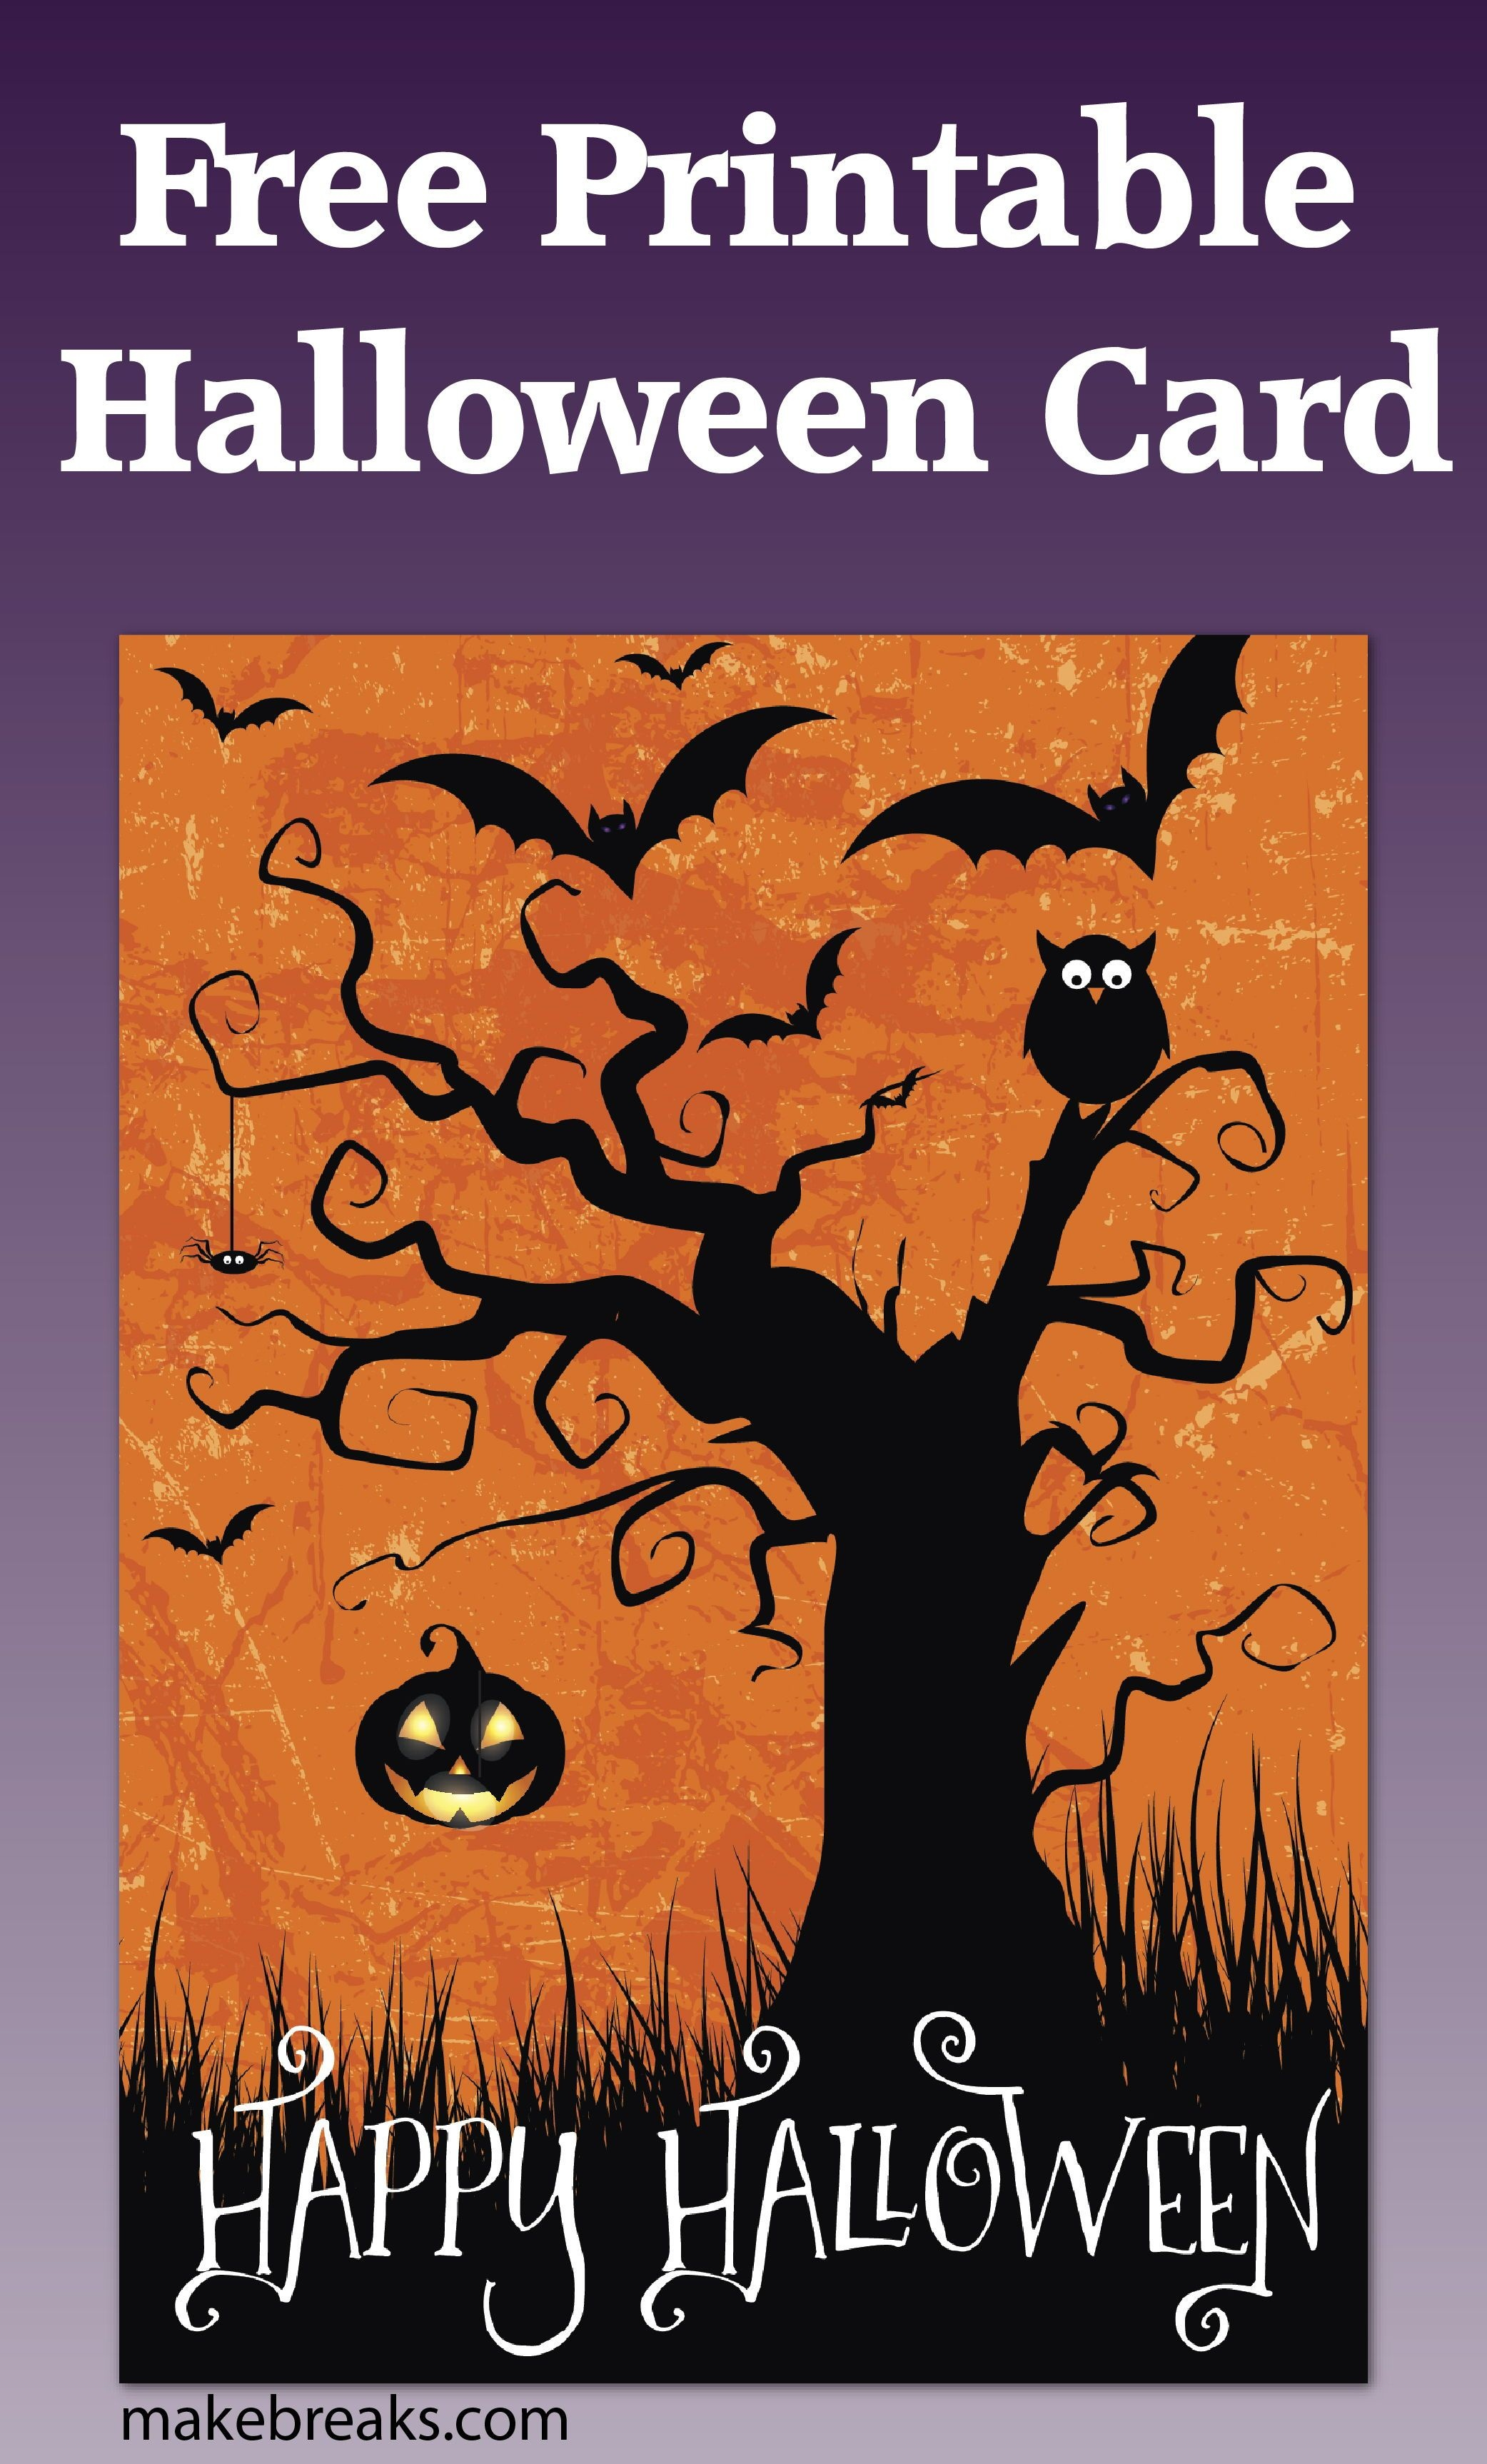 Free Printable Happy Halloween Card Or Party Invitation | Diy And - Free Printable Halloween Cards